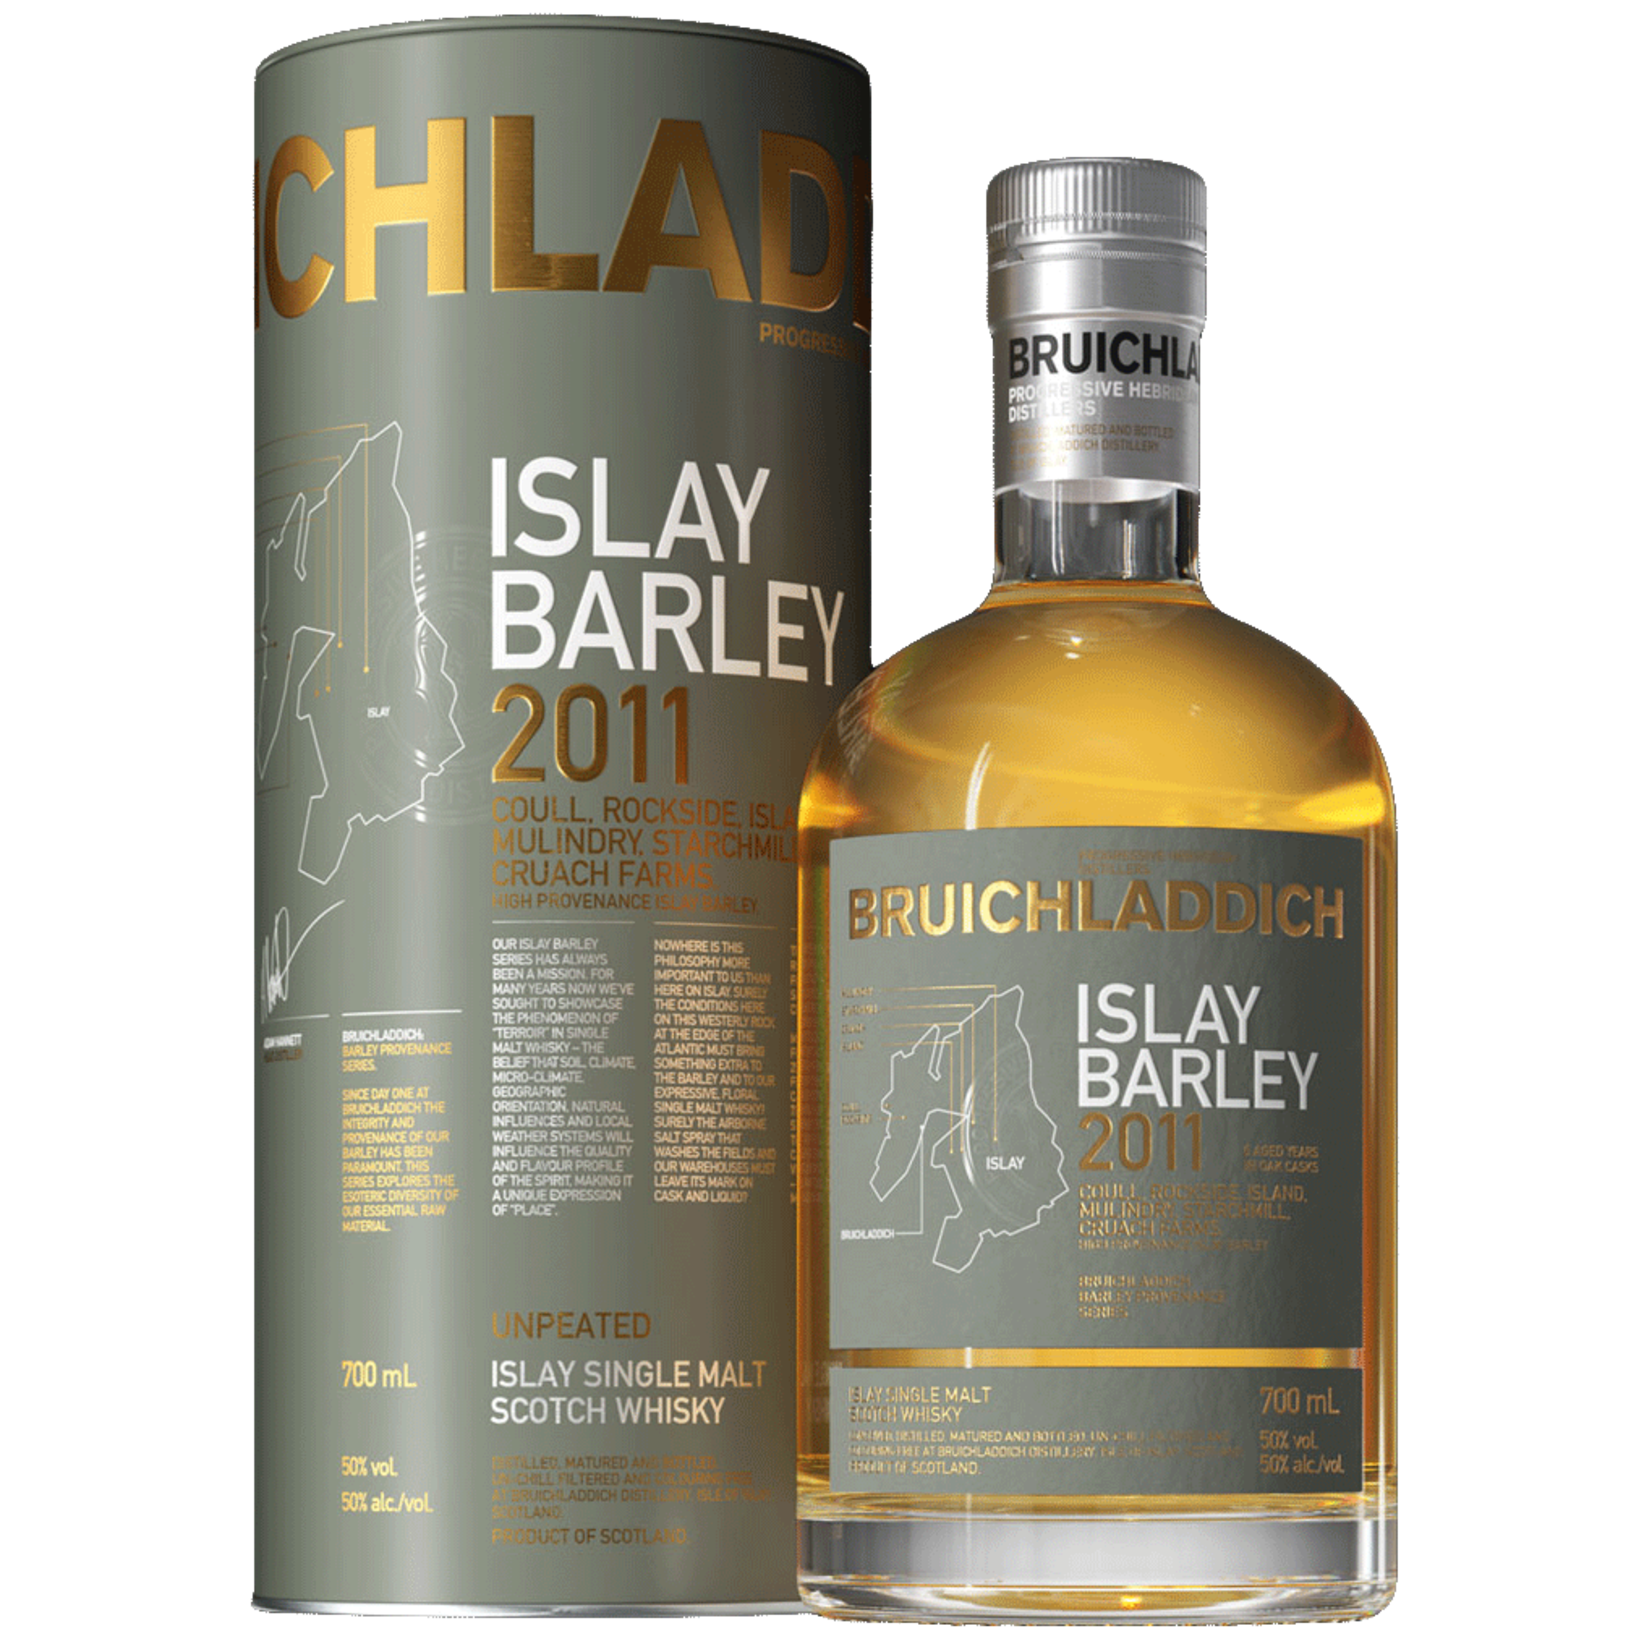 Spirits Bruichladdich Scotch Single Malt 2011 Islay Barley